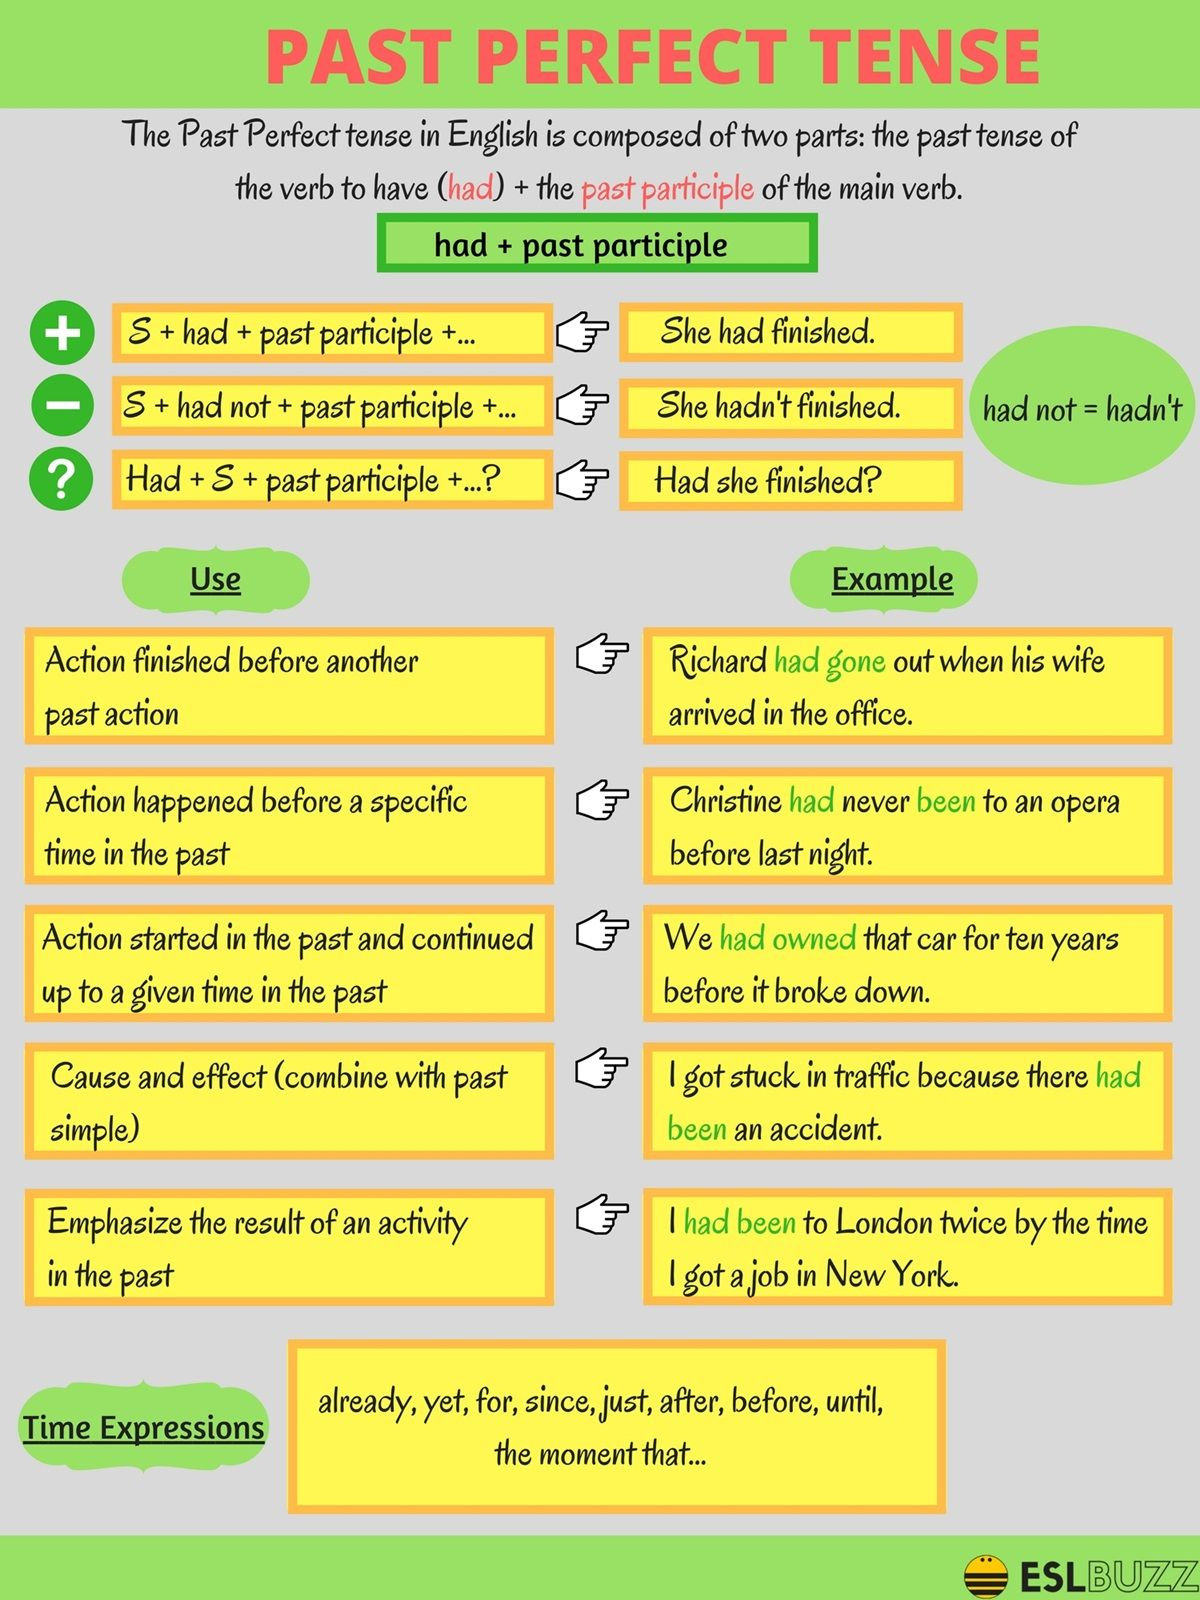 Learn The 12 Verb Tenses In English Grammar With Helpful Pictures Fluent Land Learn English English Grammar Tenses English Verbs [ 1600 x 1200 Pixel ]